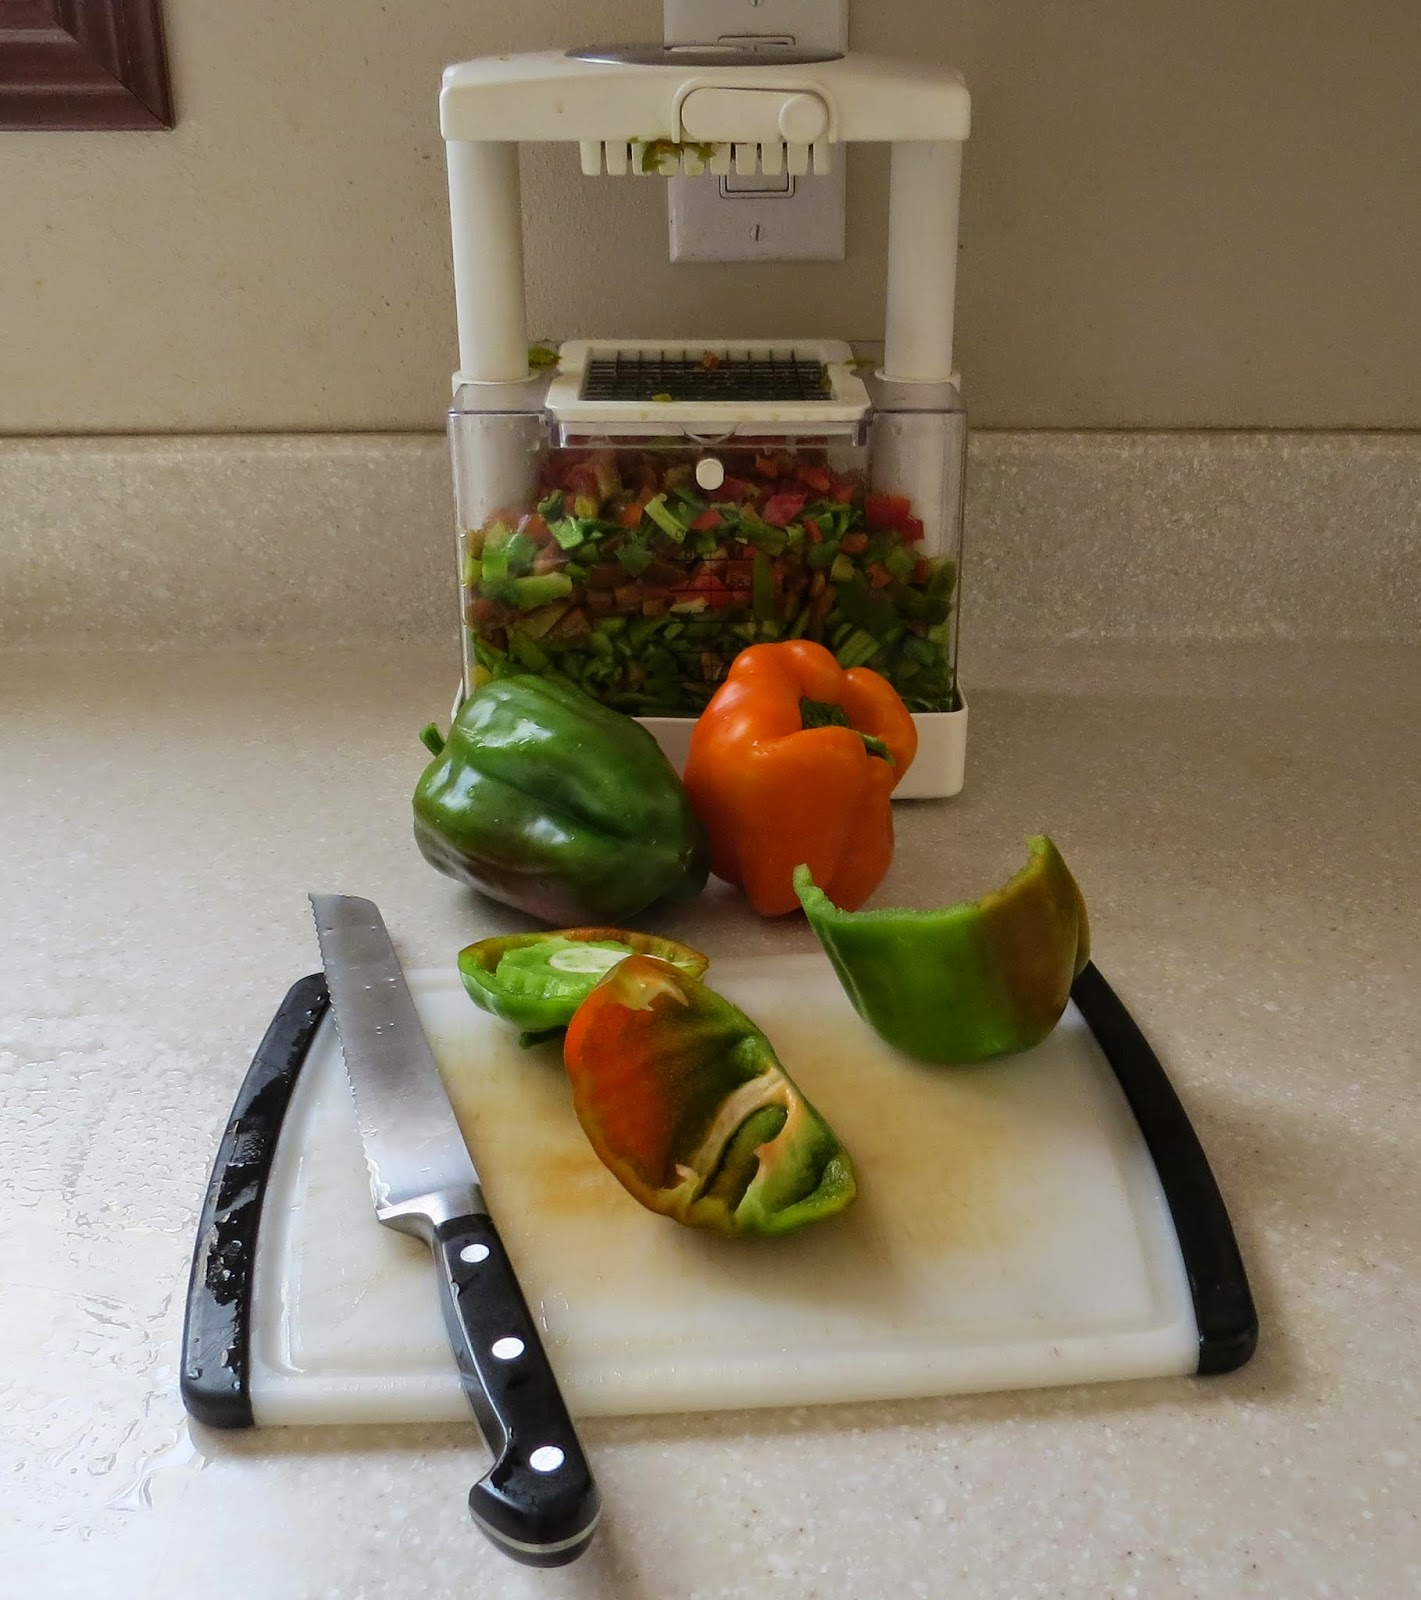 Preserving peppers